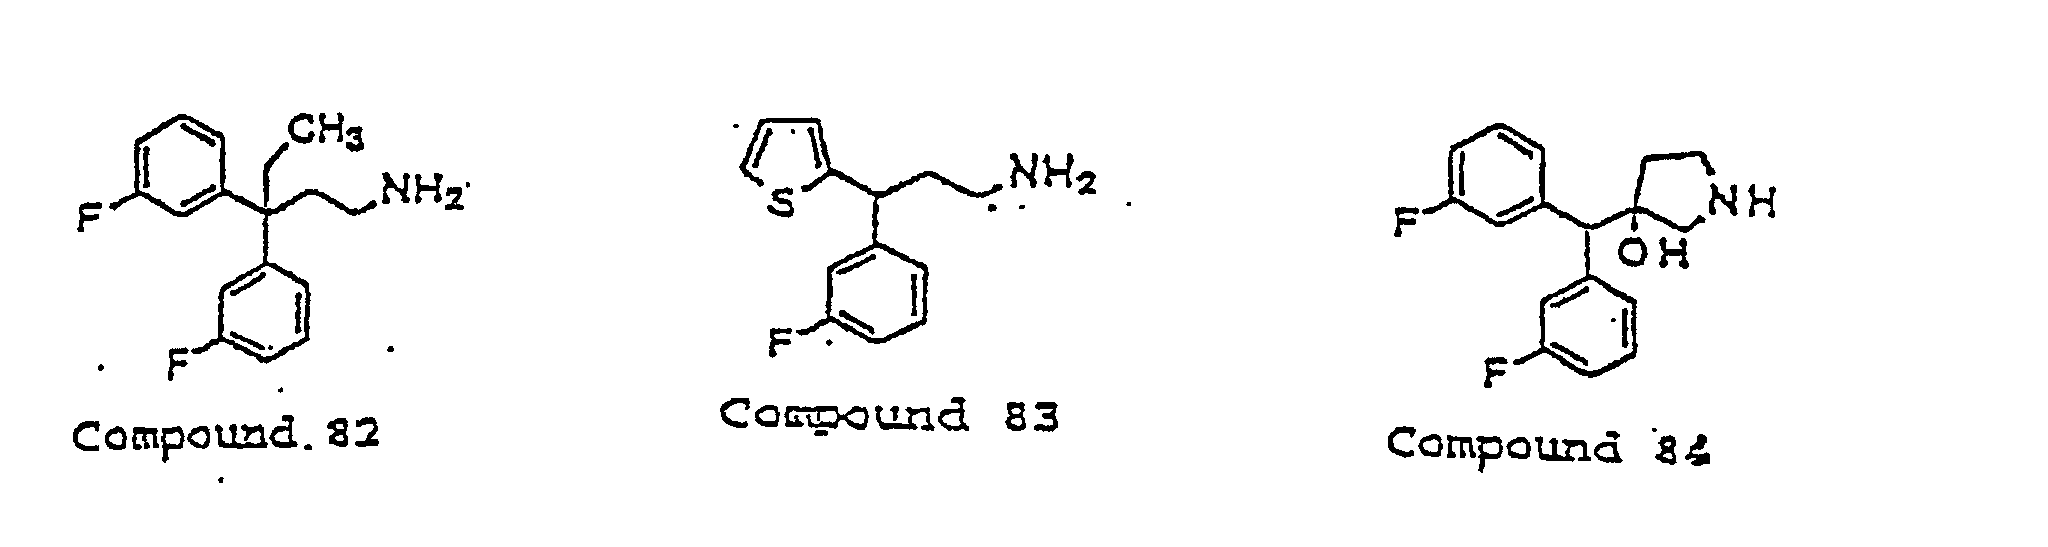 EP0831799B1 - Compounds active at a novel site on receptor ...